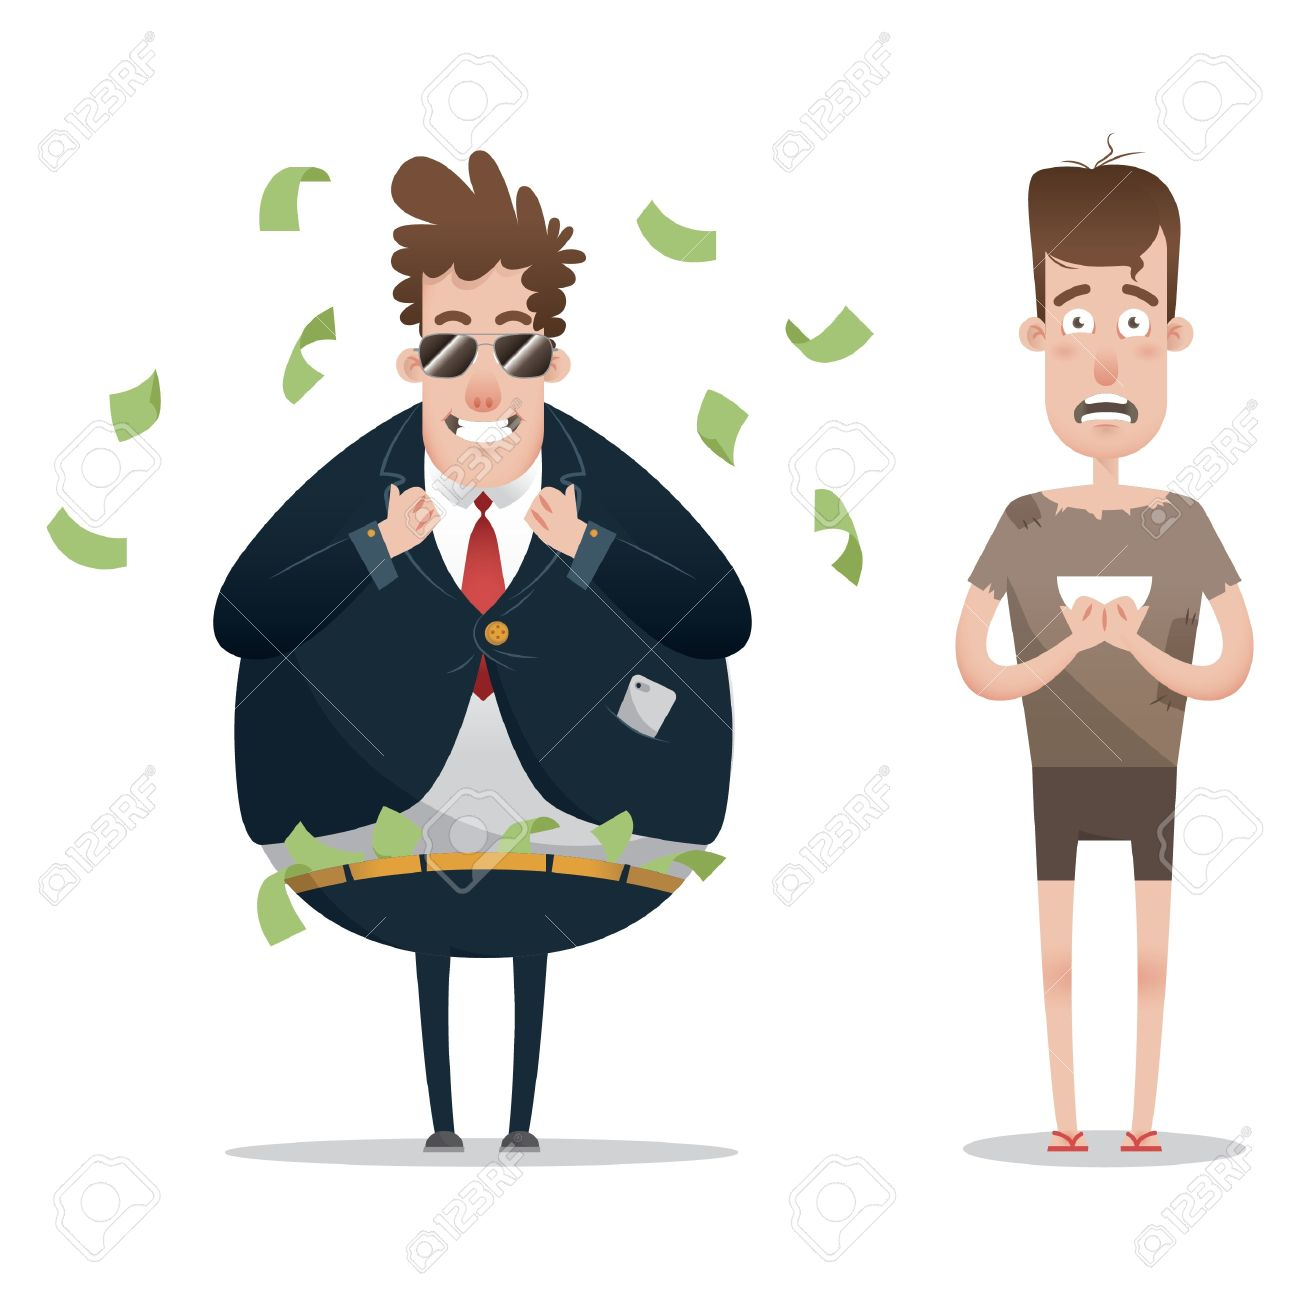 rich and poor man concept royalty free cliparts vectors and stock